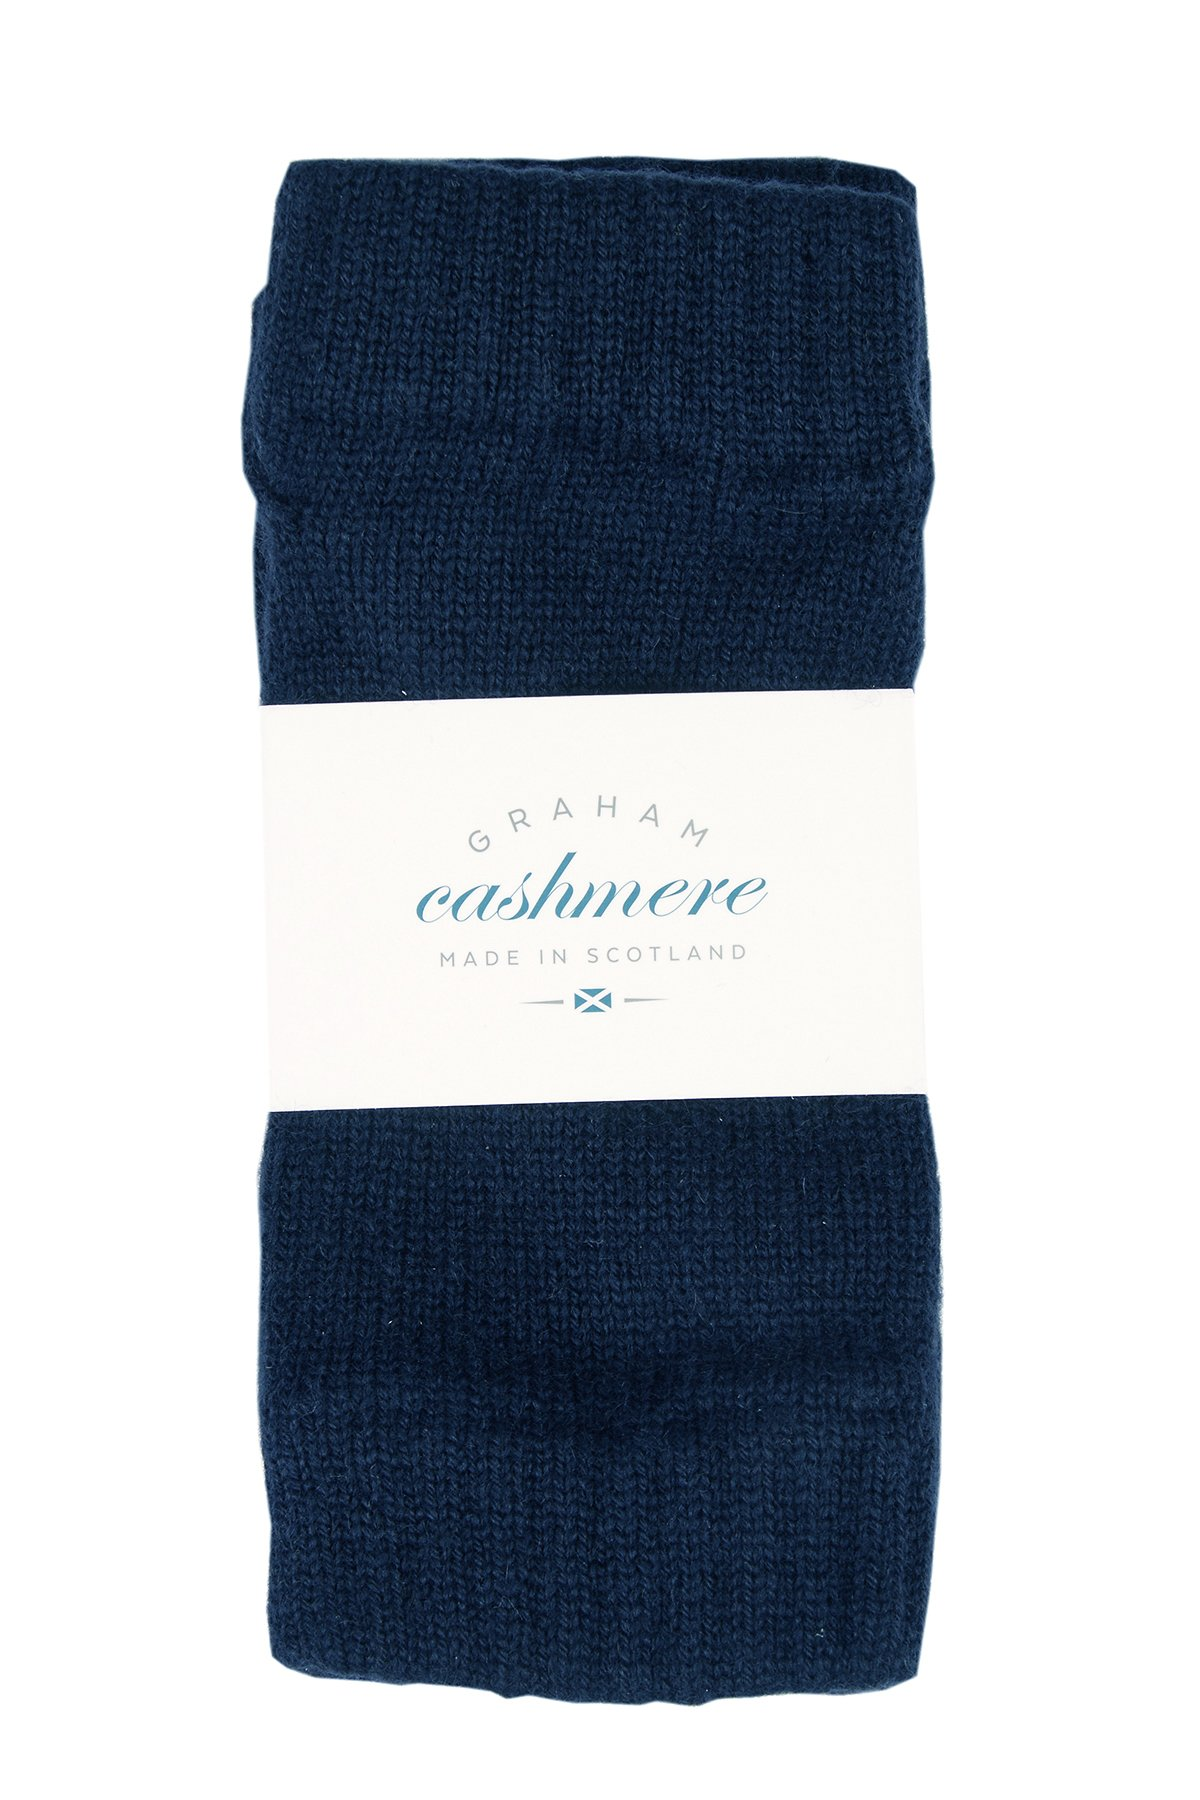 Graham Cashmere Women's Pure Cashmere Wristwarmers Gift Boxed One size Blue